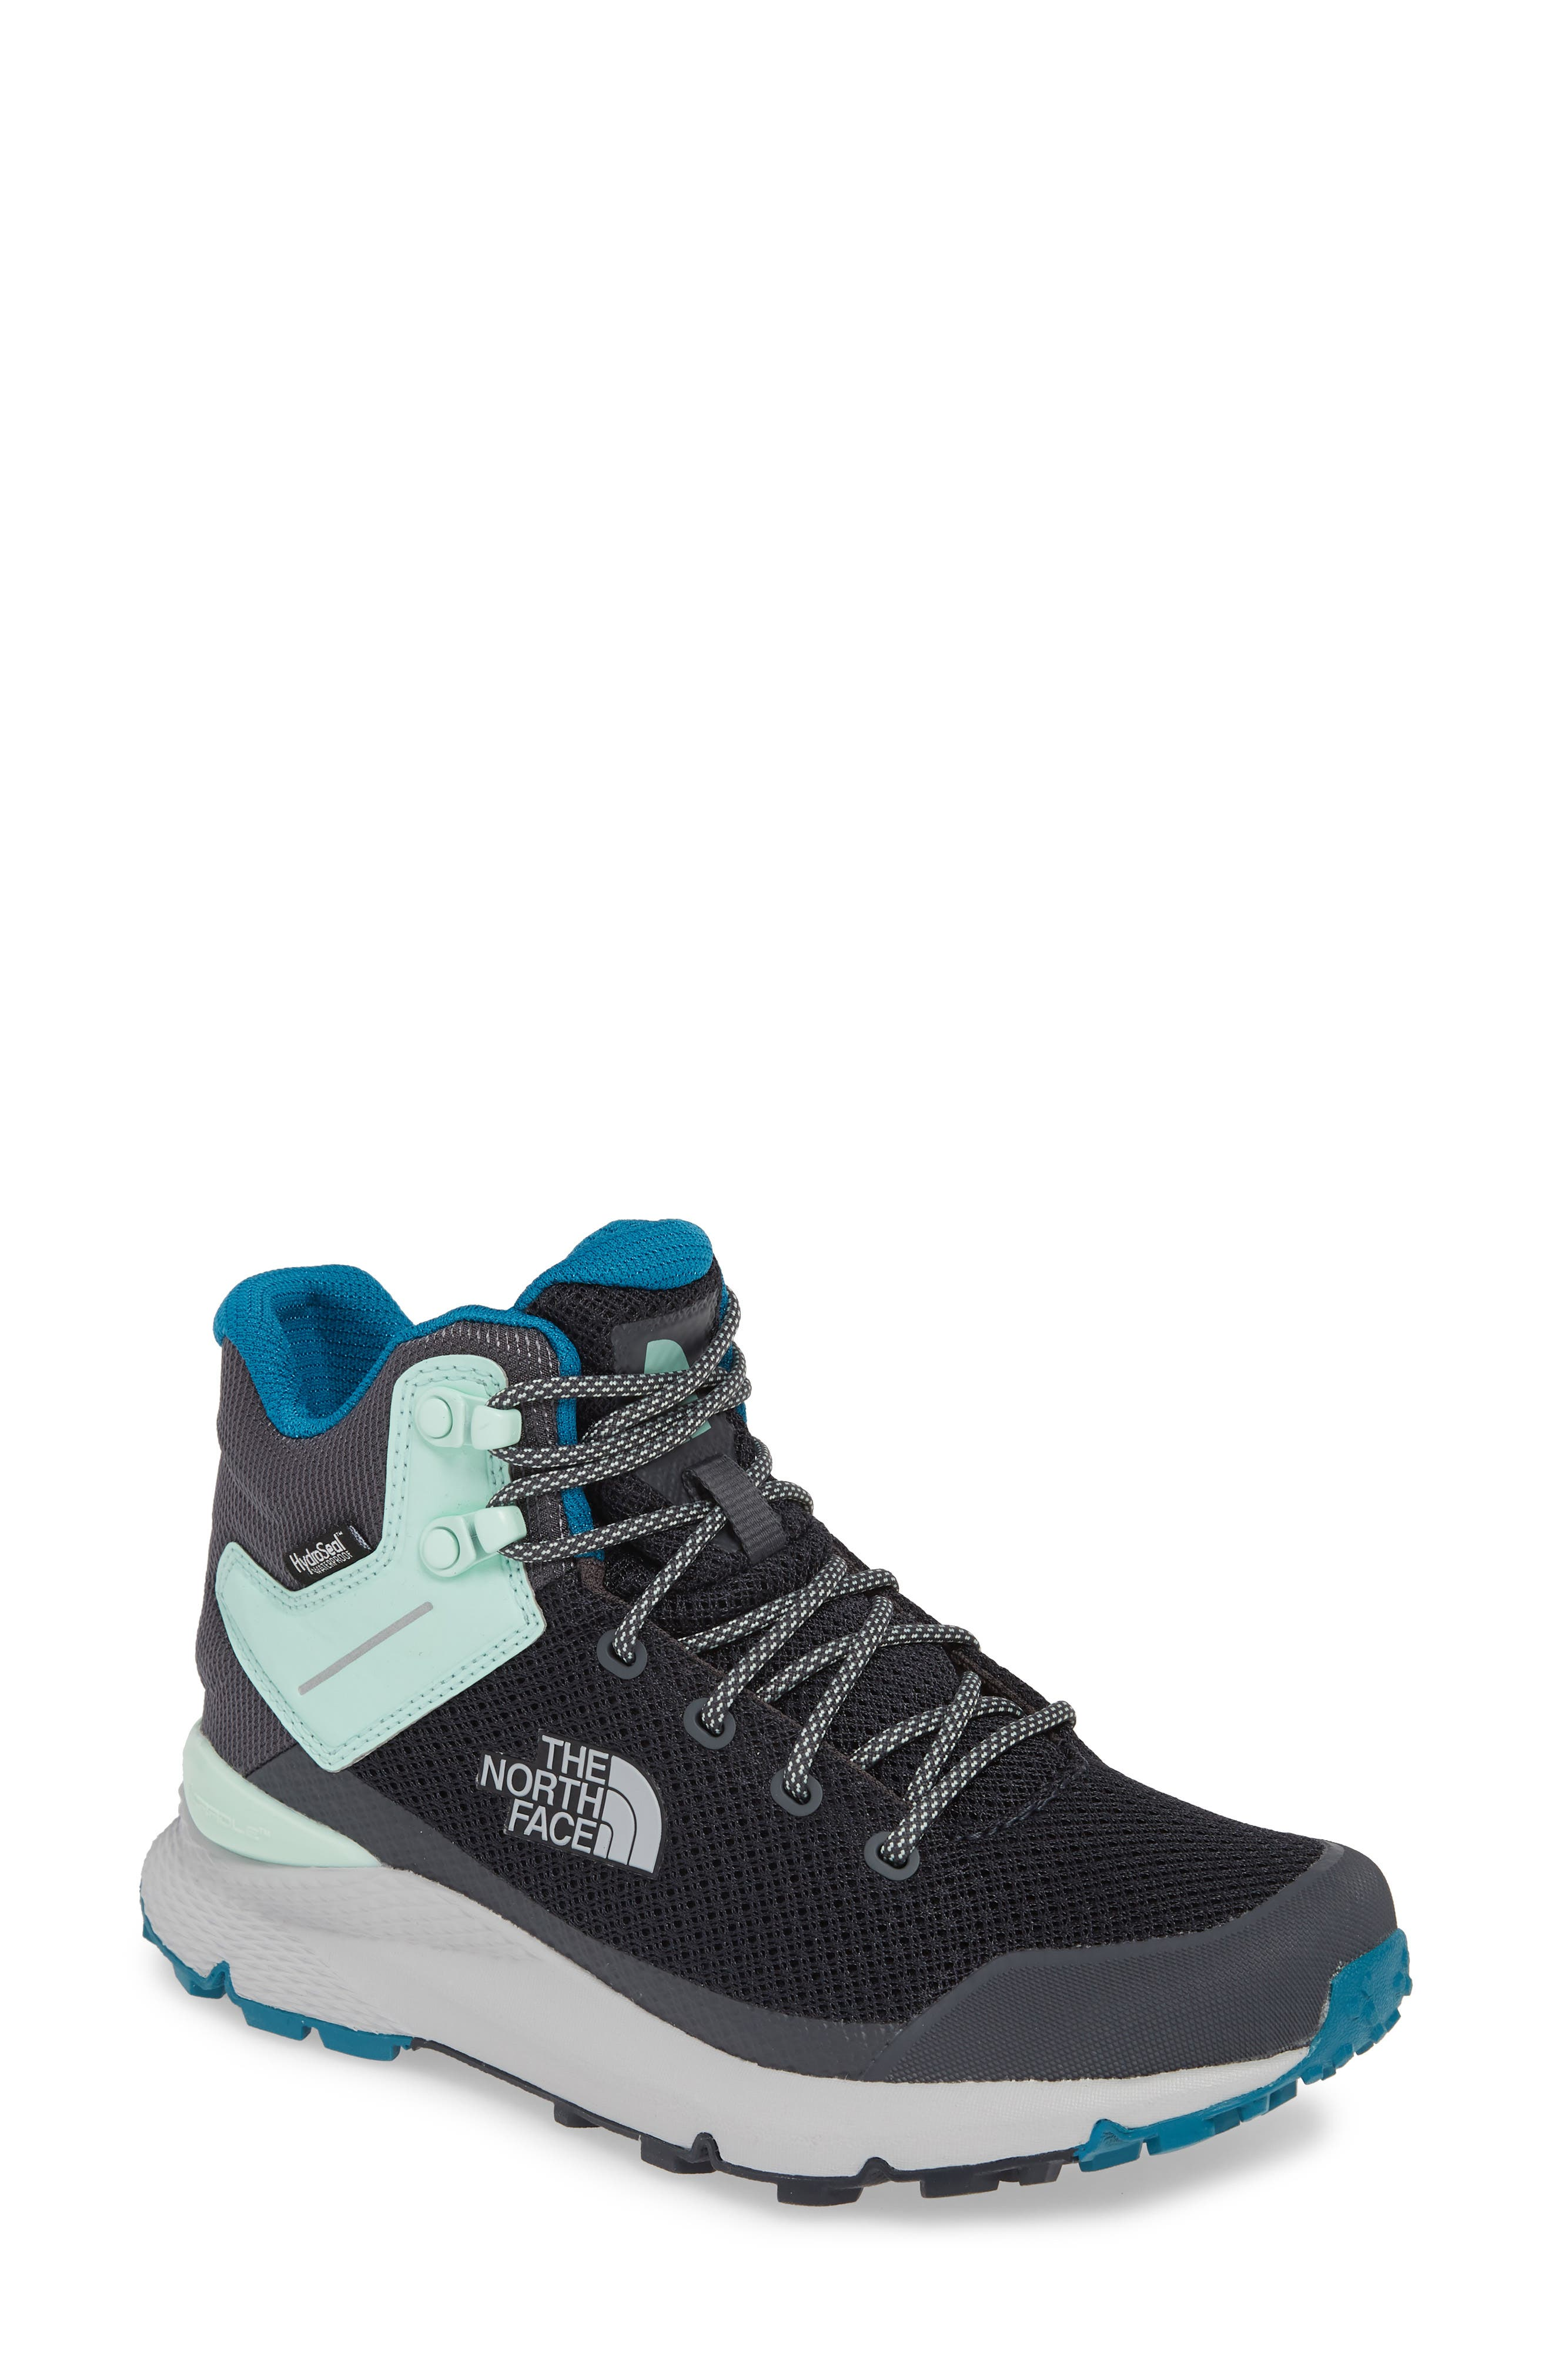 The North Face Vals Waterproof Mid Hiking Boot, Grey